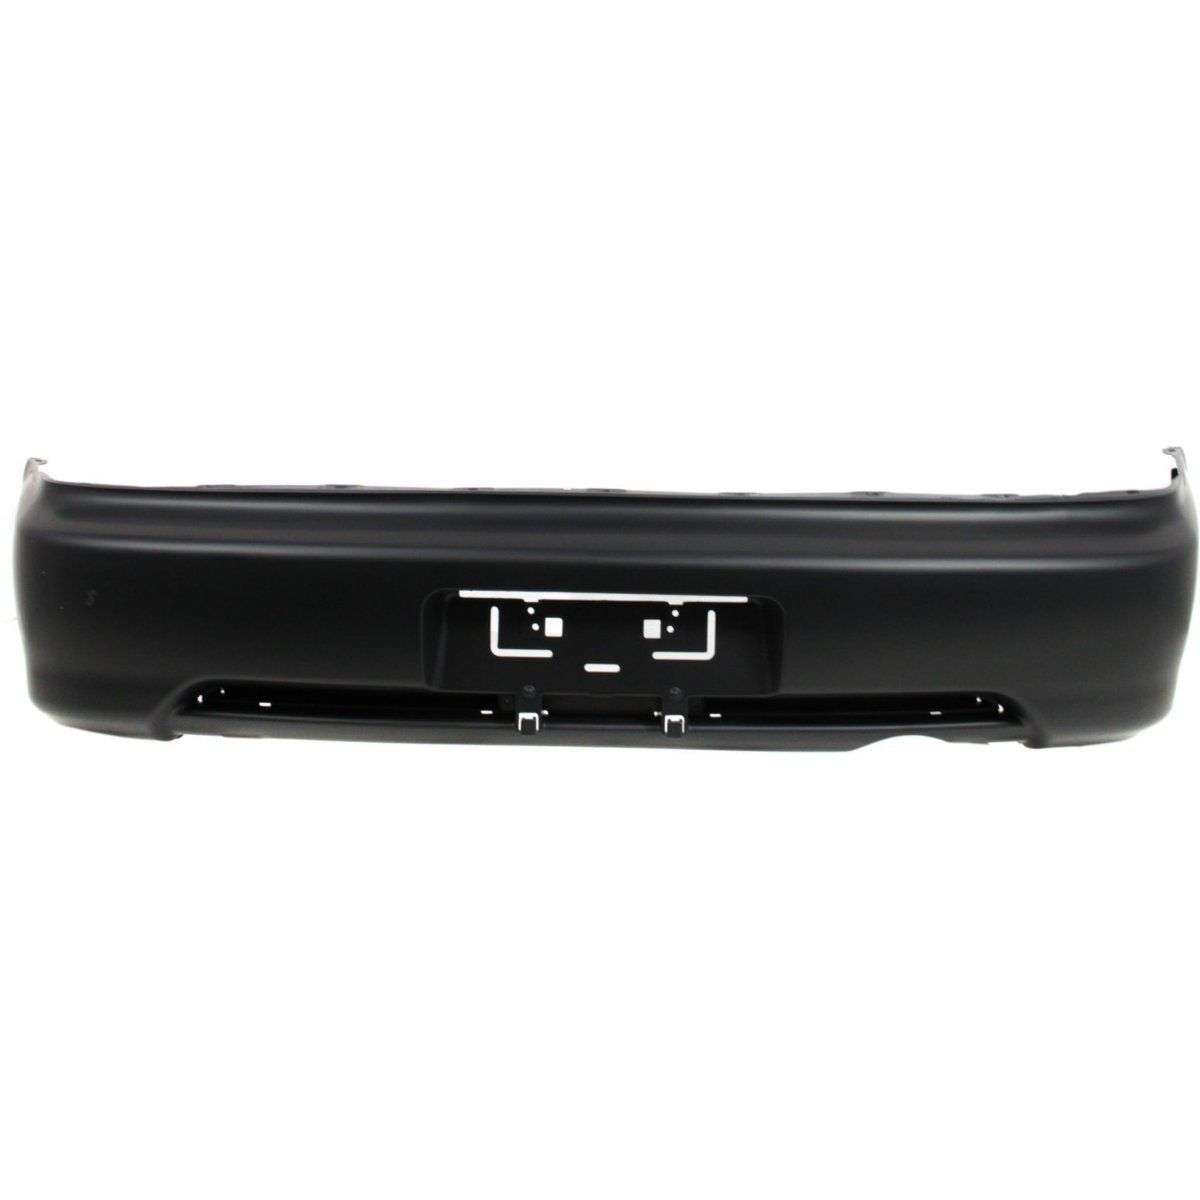 Rear Bumper Cover For 1998-2001 Acura Integra 2-Door